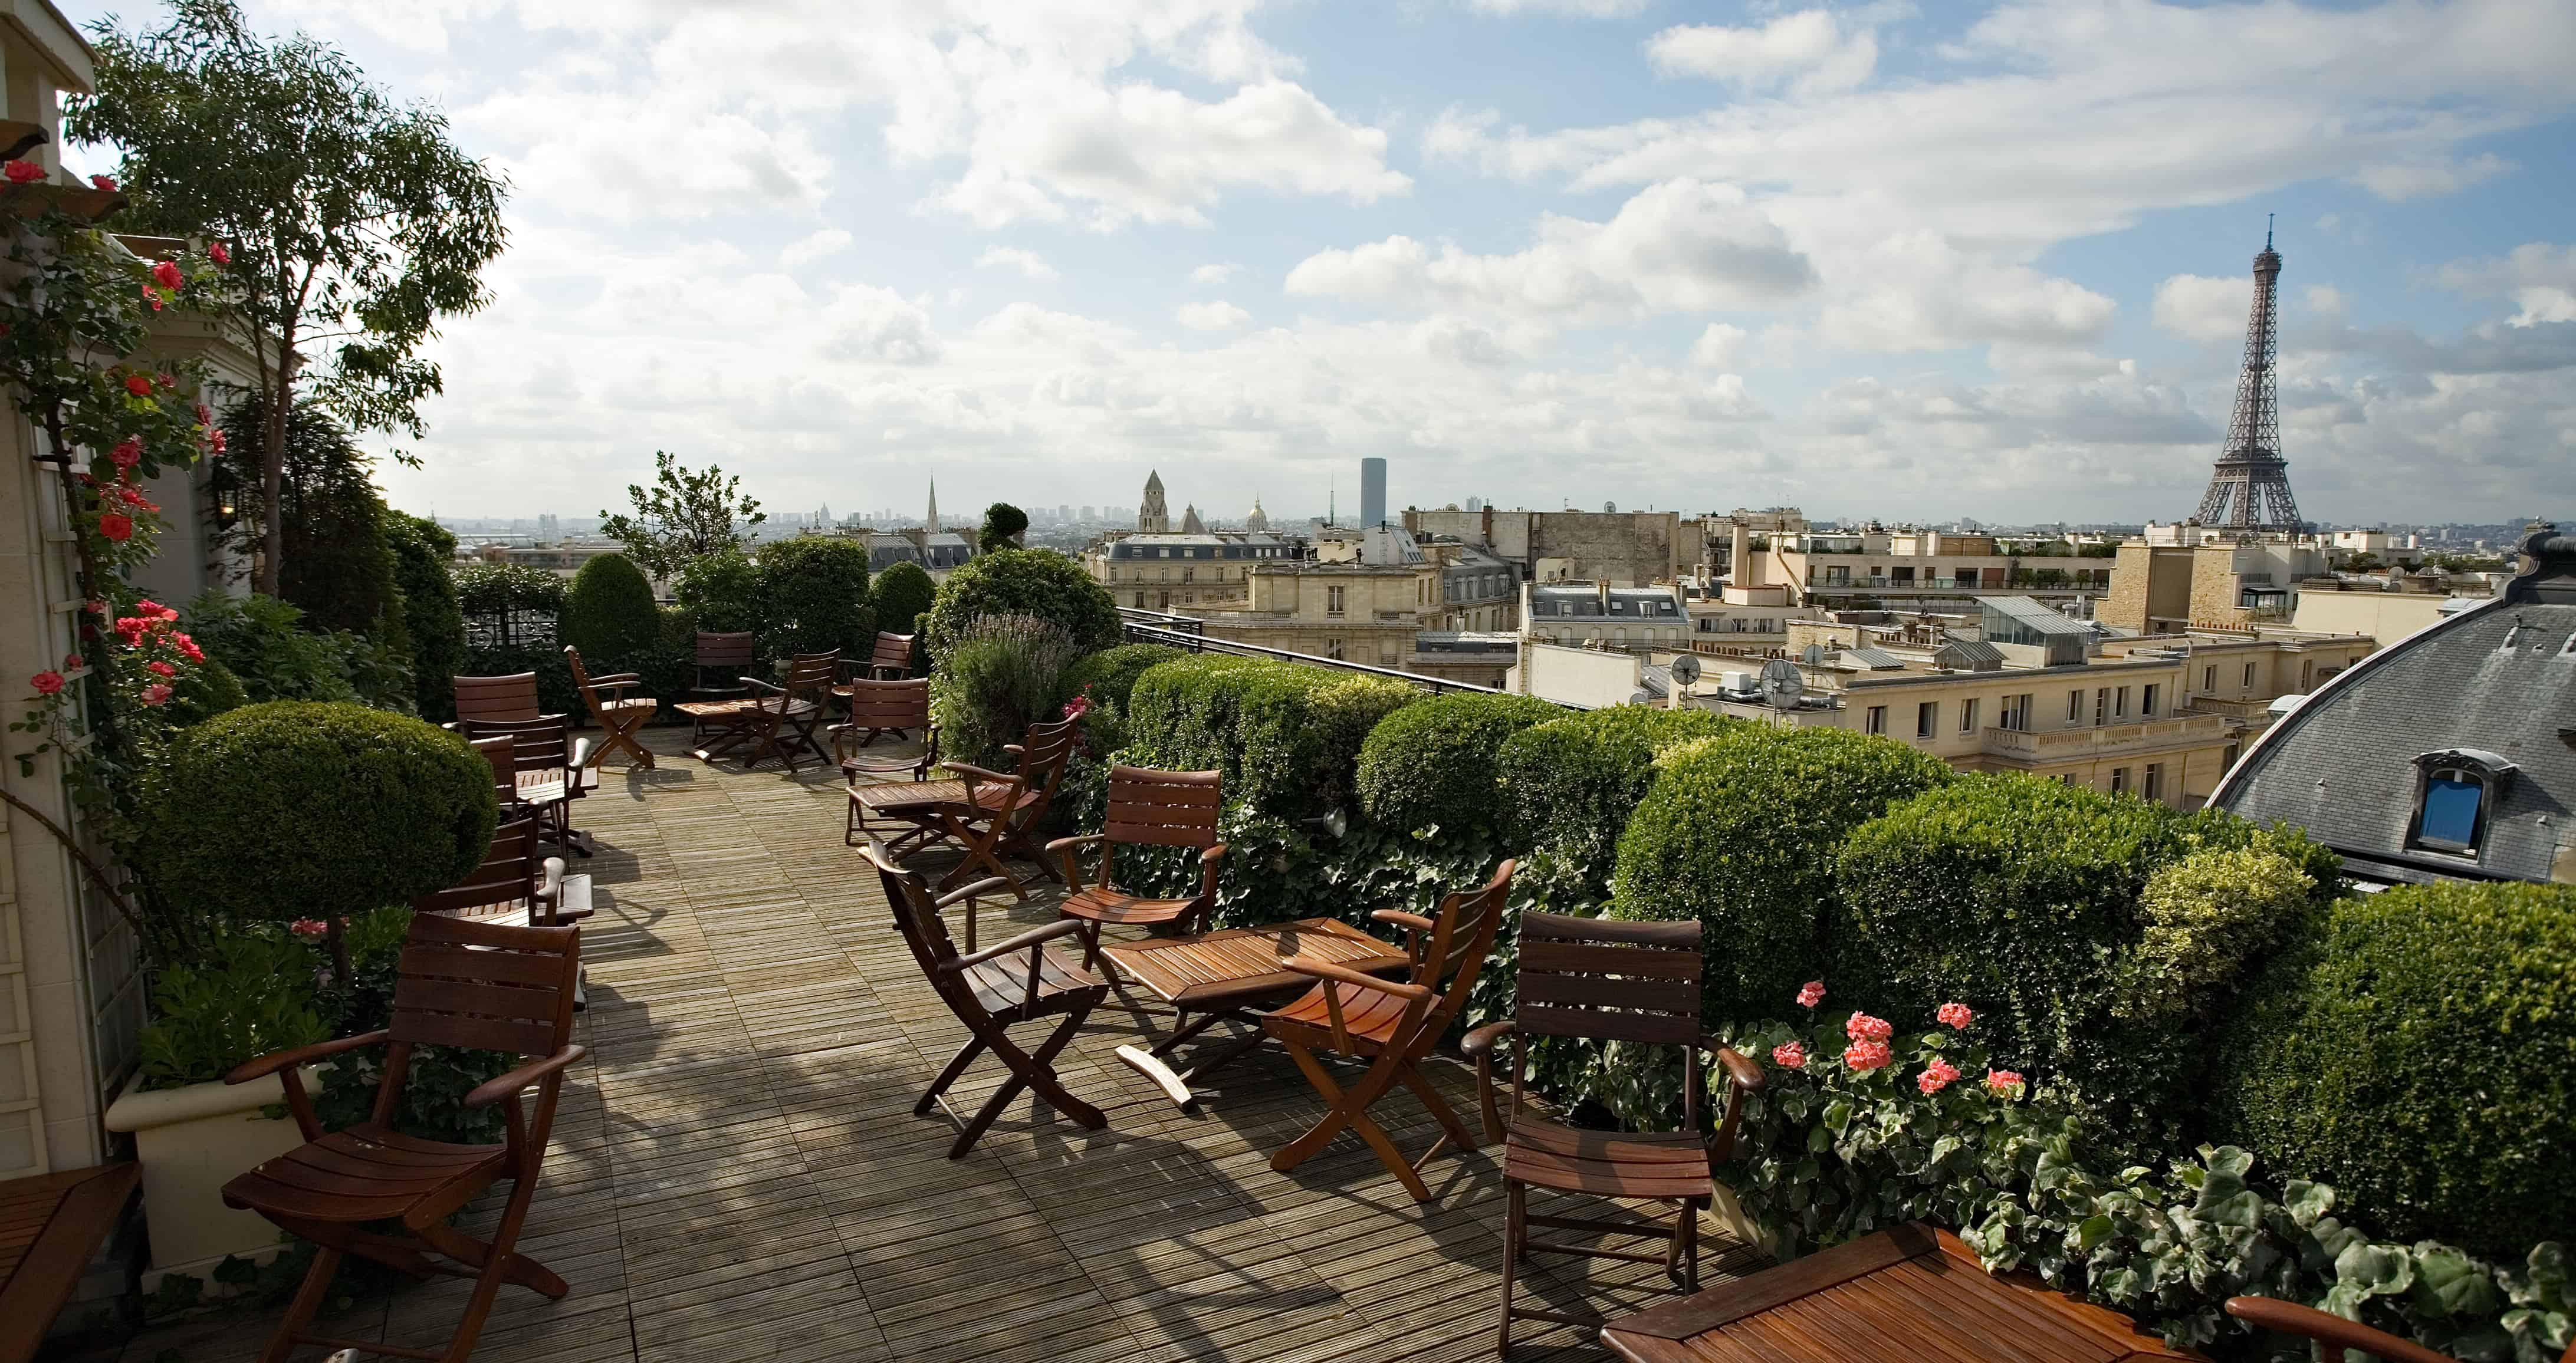 Terrasse Hotel Raphael Things To Do Around The Arc De Triomphe In Paris